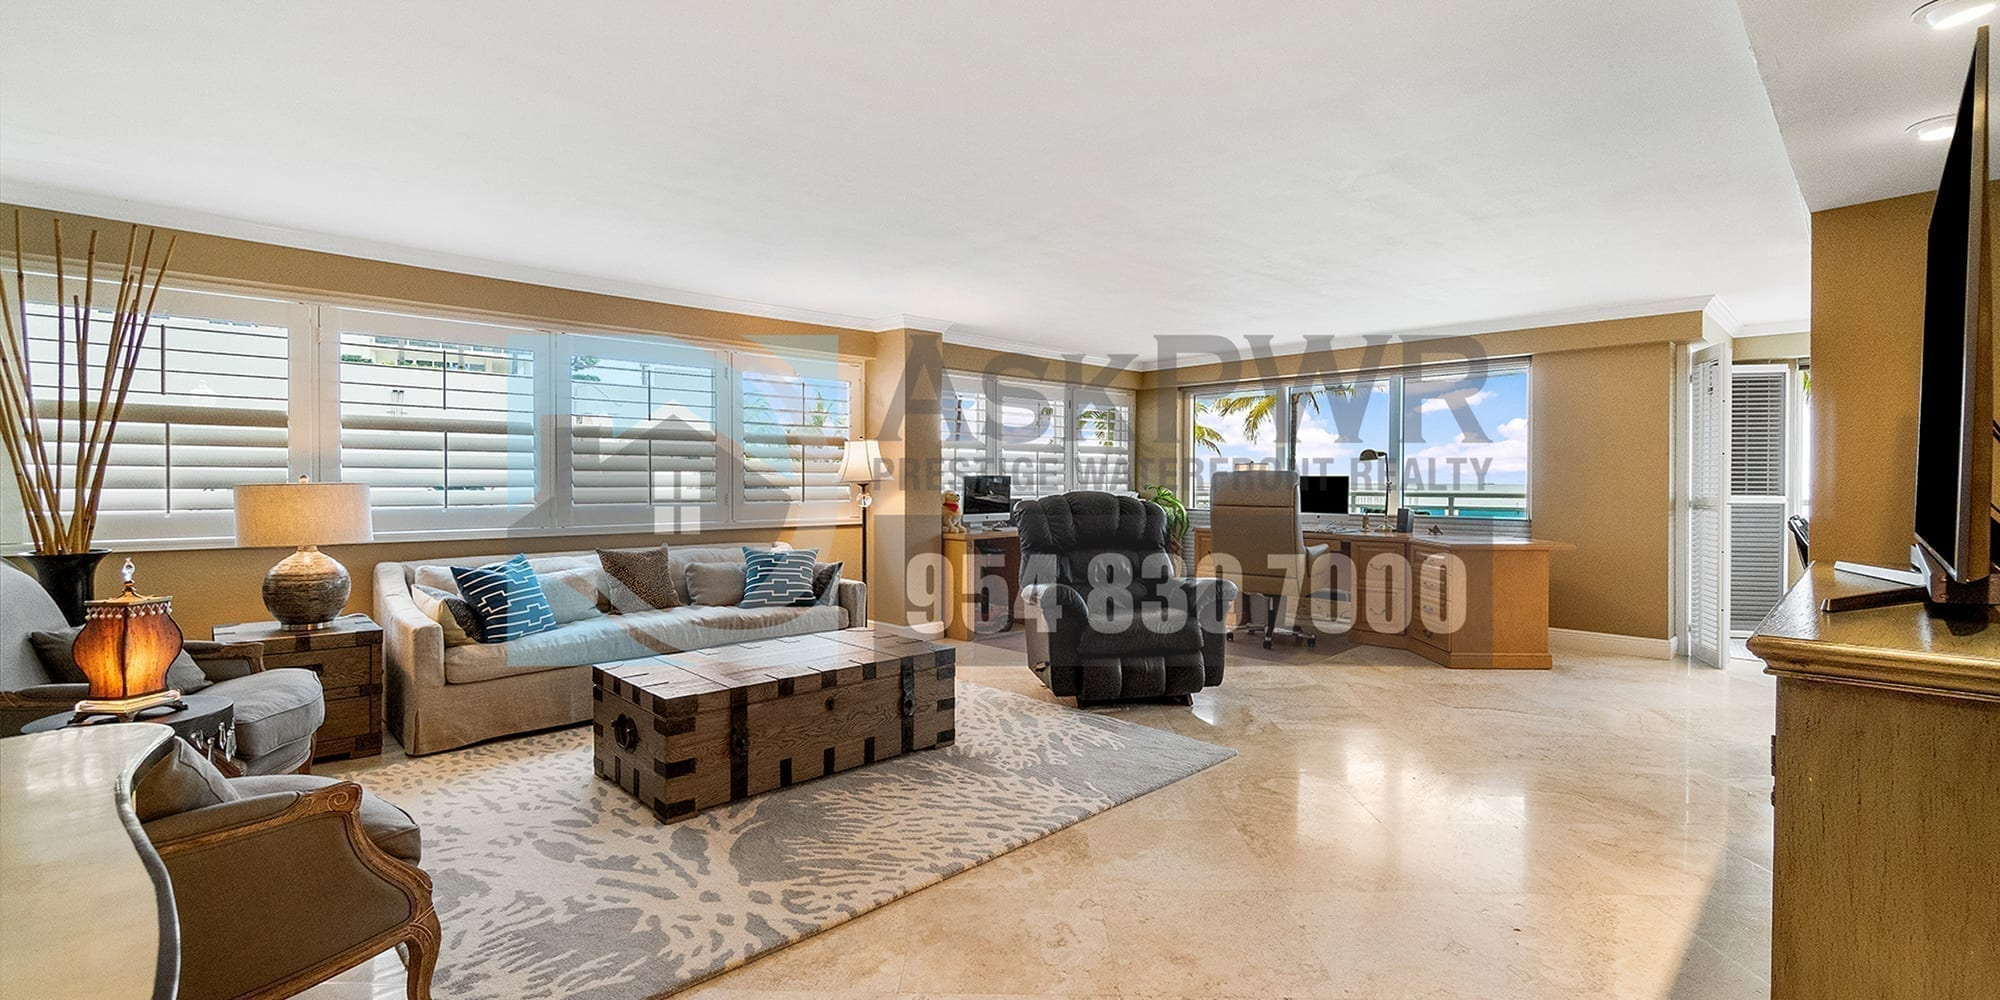 F10238284 – 3430 Galt Ocean Dr Apt 106 Fort Lauderdale, FL 33308 | The Commodore Condo for Sale | Galt Mile Real Estate Listing